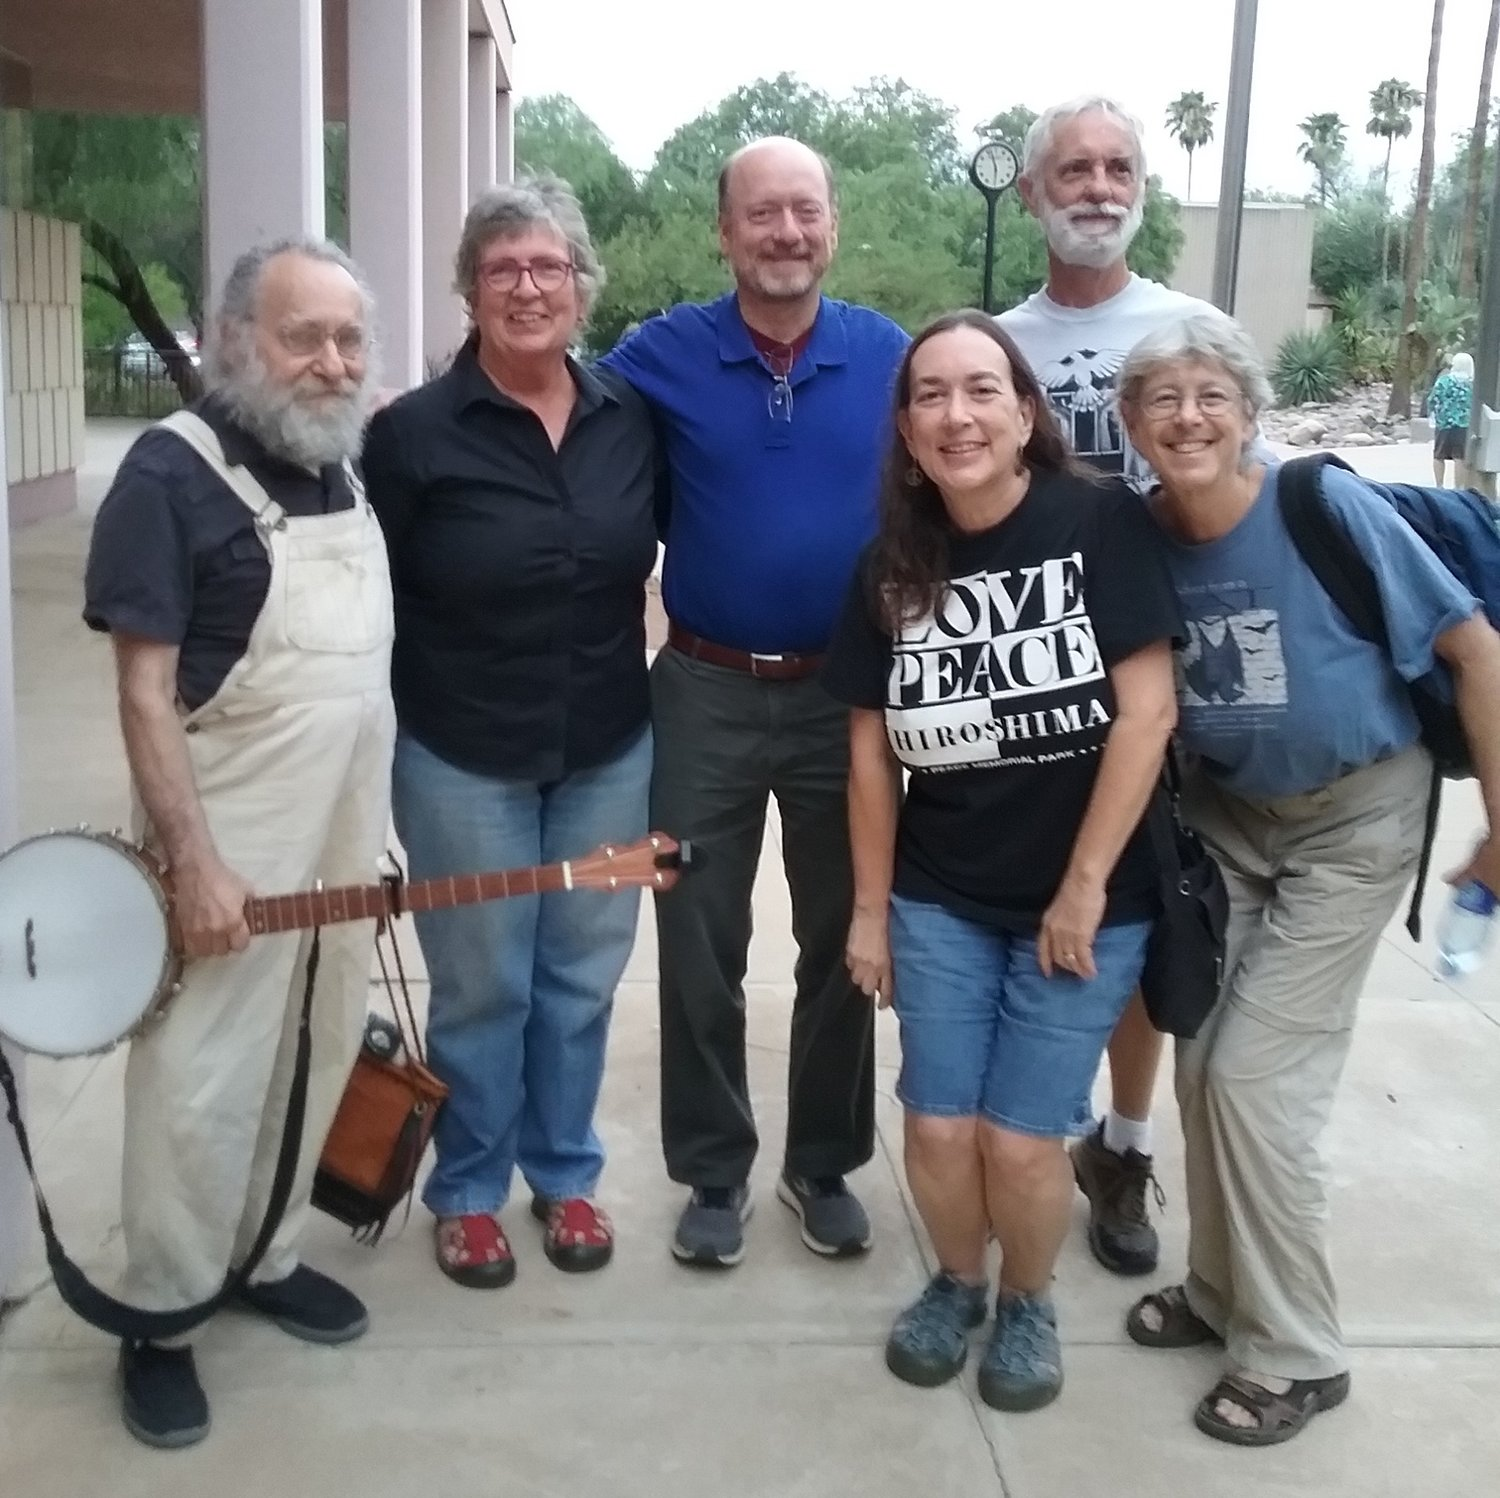 #banjoguy Ted Warmbrand, Kathy Altman and Russ Lowes of PSR-Arizona, Felice and Jack Cohen-Joppa from the Nuclear Resister, and Ivy Schwartz of PSR-Arizona